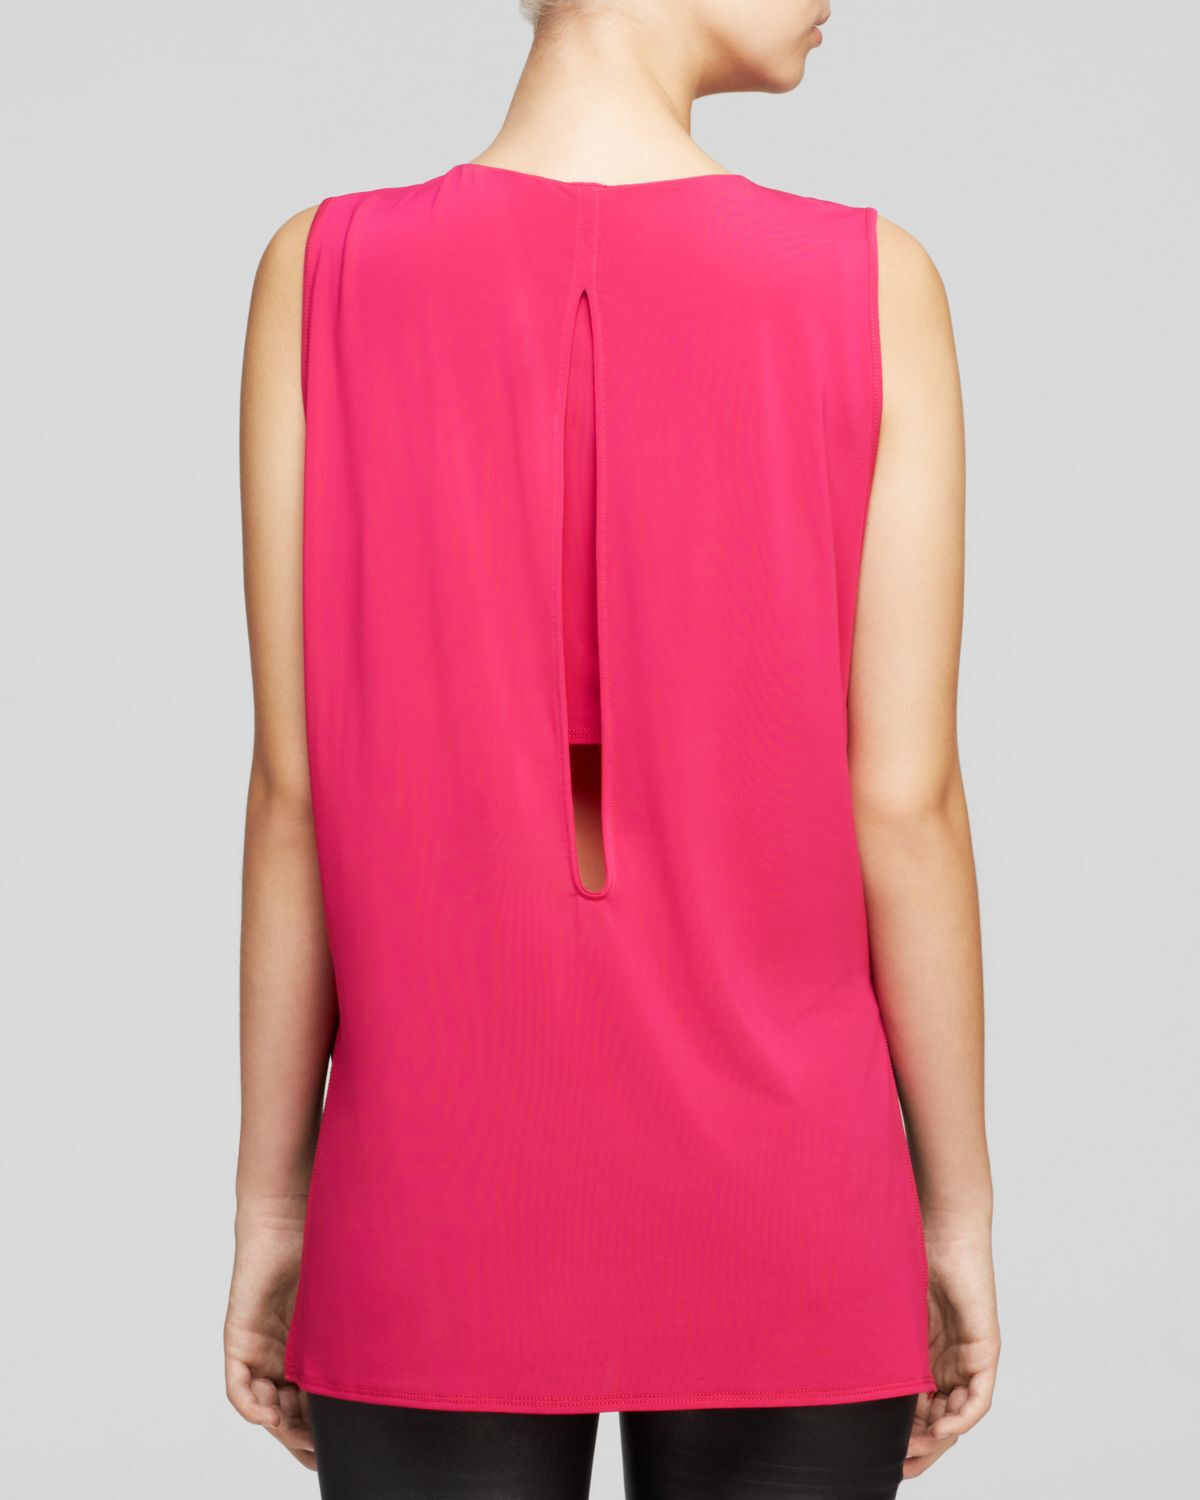 Helmut Lang Faint Jersey Sleeveless Top in Fuchsia Pink Size Large L